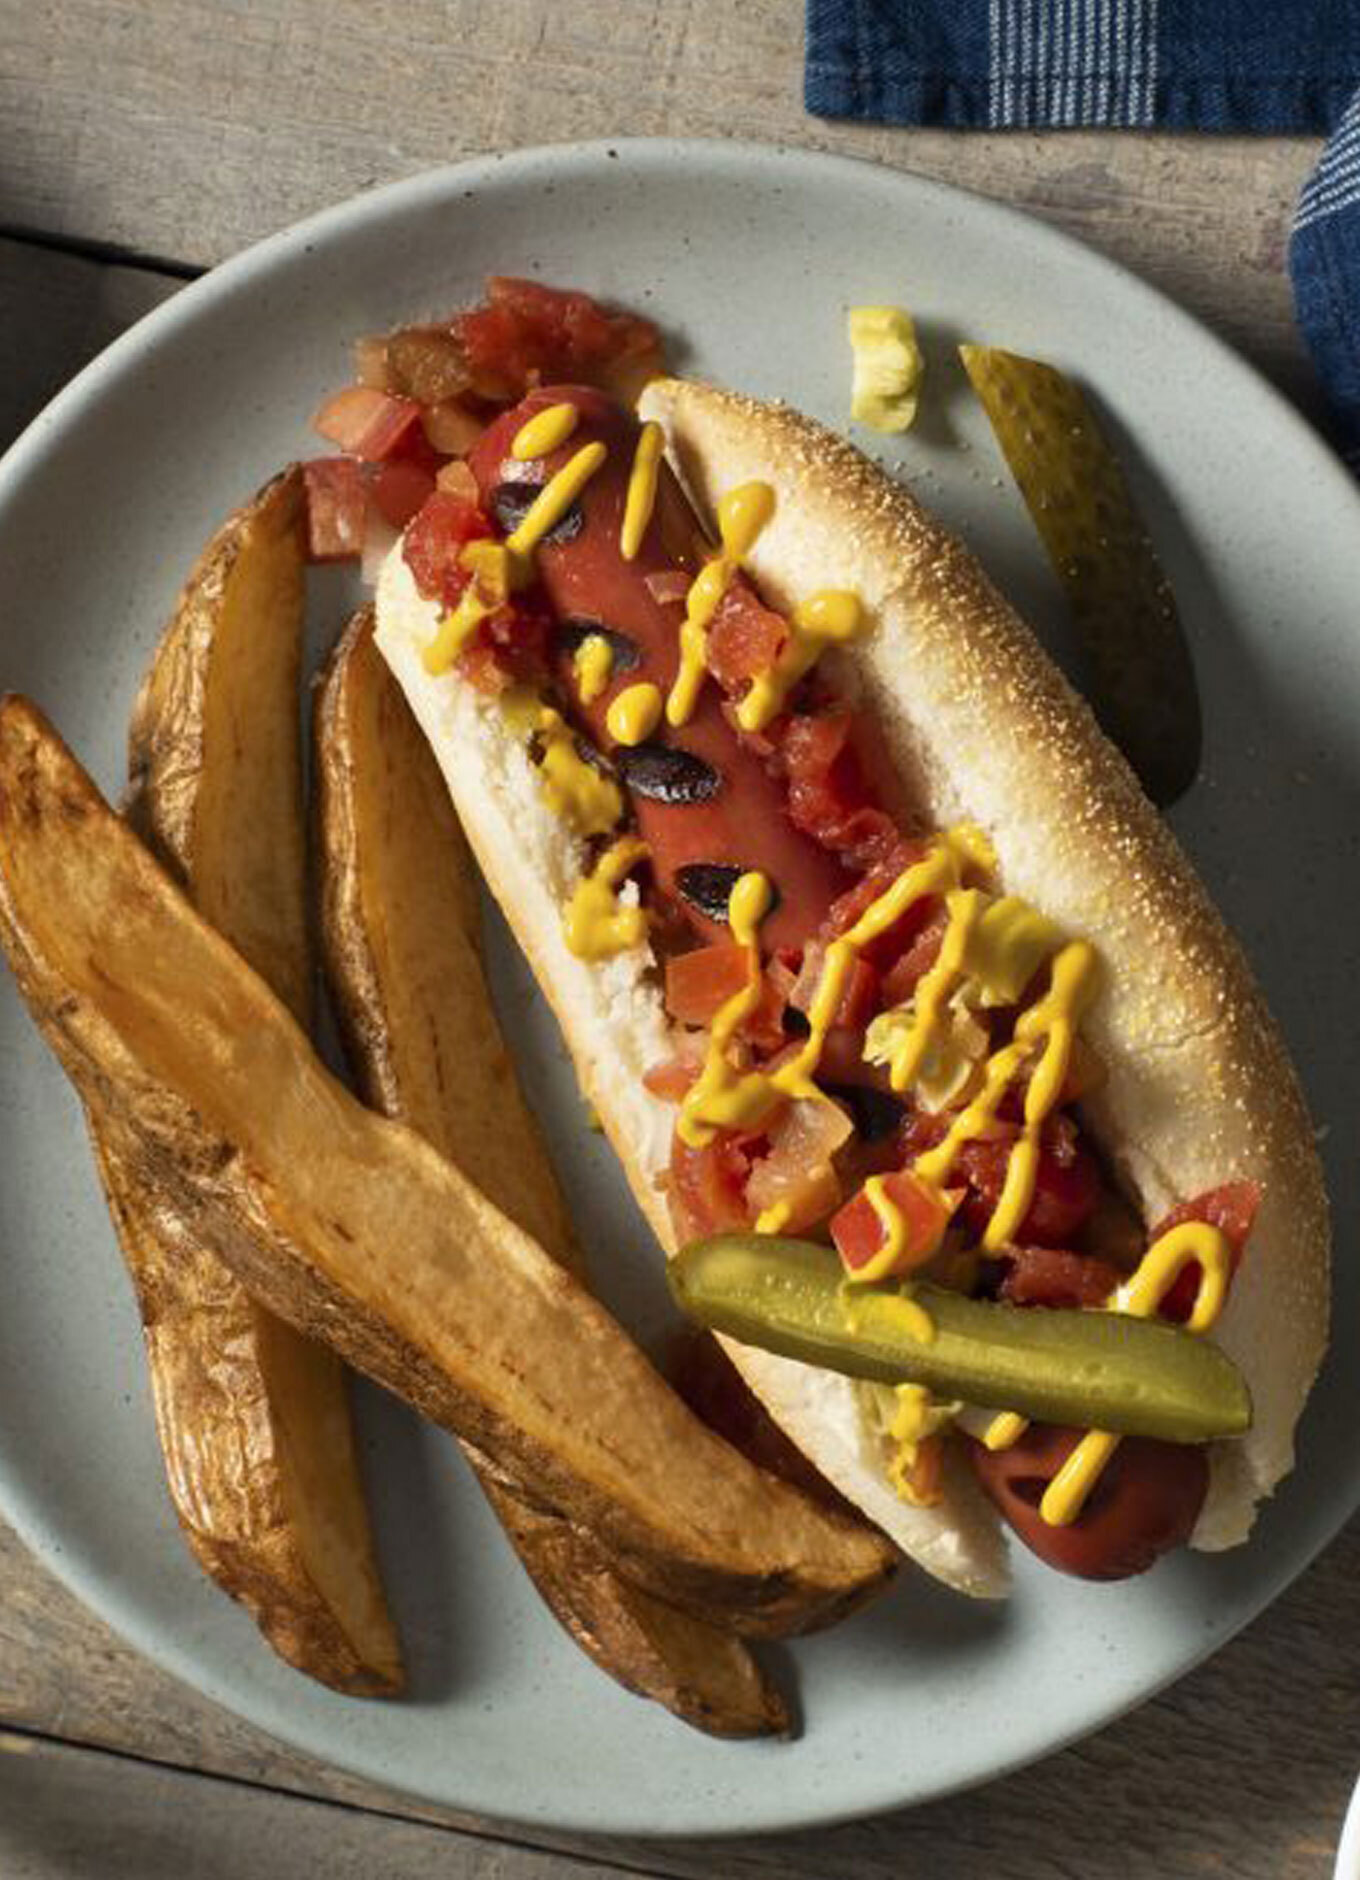 A hot dog on a toasted bun, topped with mustard, tomato, onion and sautéed onion, with a side of potato wedges.